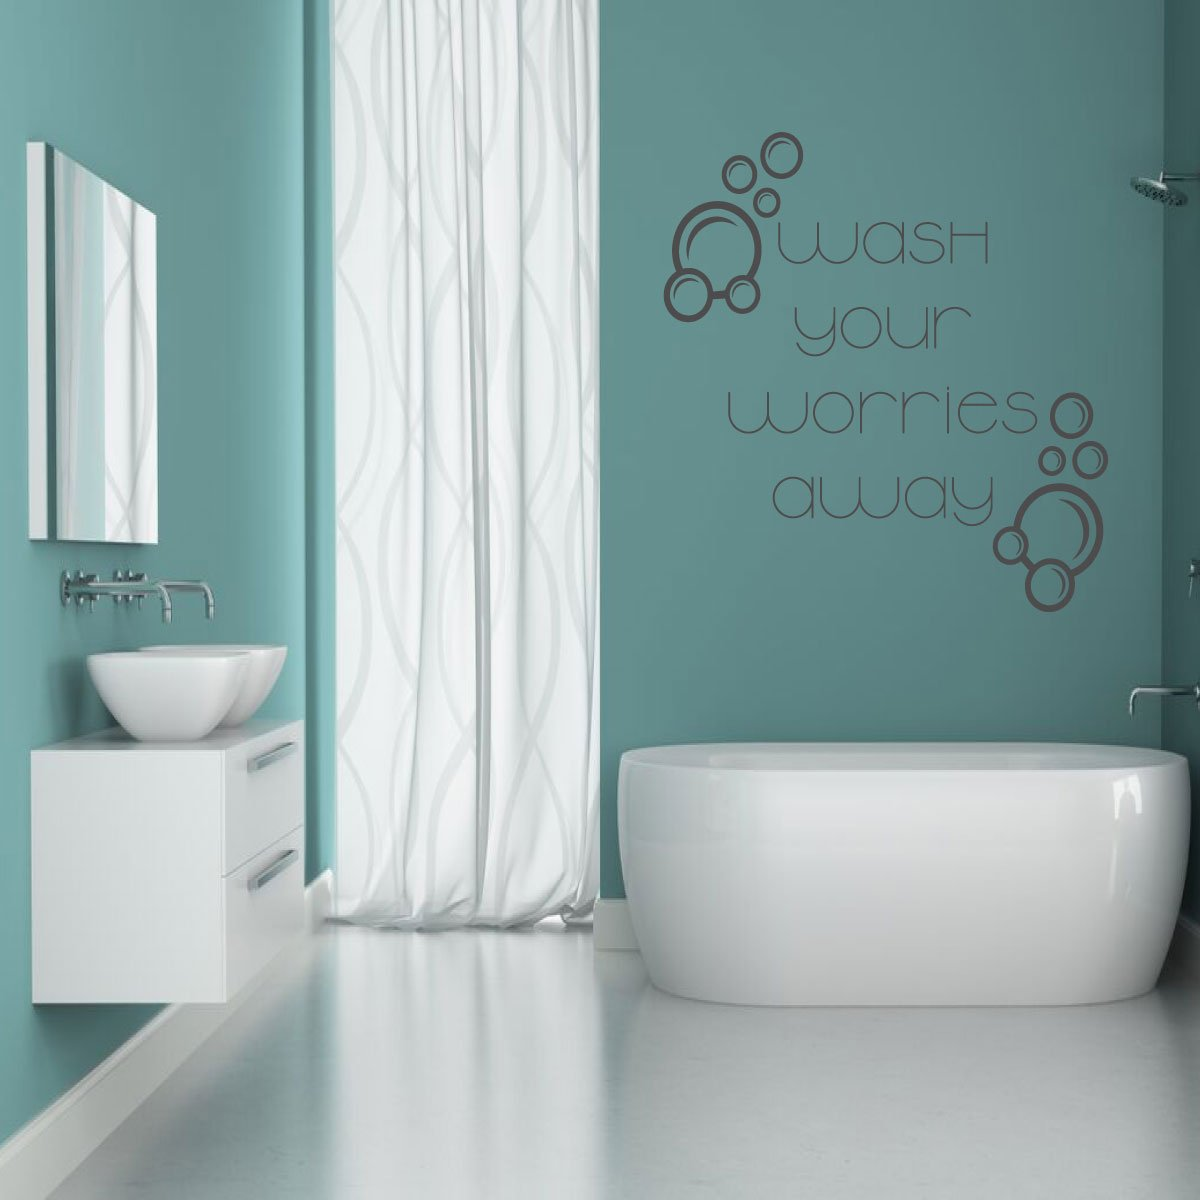 Wash Your Worries Away Quote Lettering Bathroom Shower Bathtub Decor Customvinyldecor Com Comedian josh potter joins nikki and anya marina to chat about getting dissed by smart people the human cockroach josh potter gets to do something special today. wash your worries away quote lettering bathroom shower bathtub decor